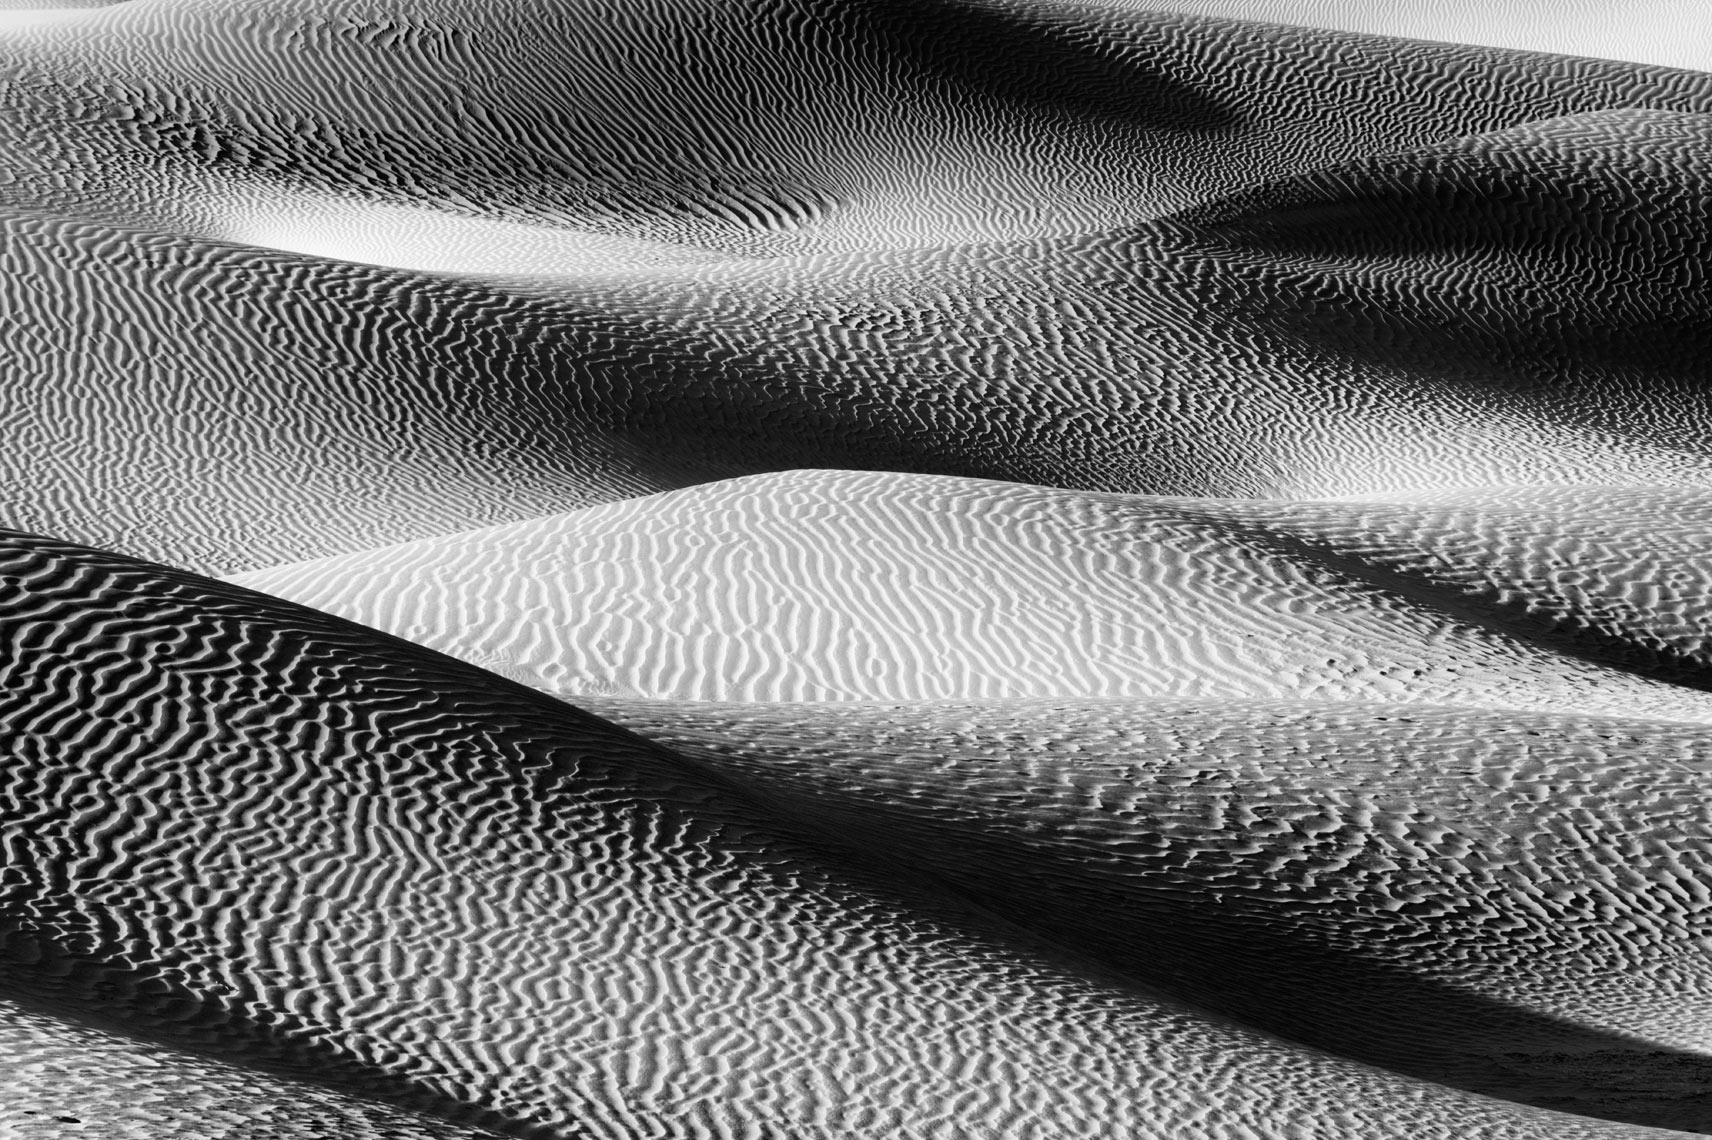 Dunes, Death Valley National Park, California